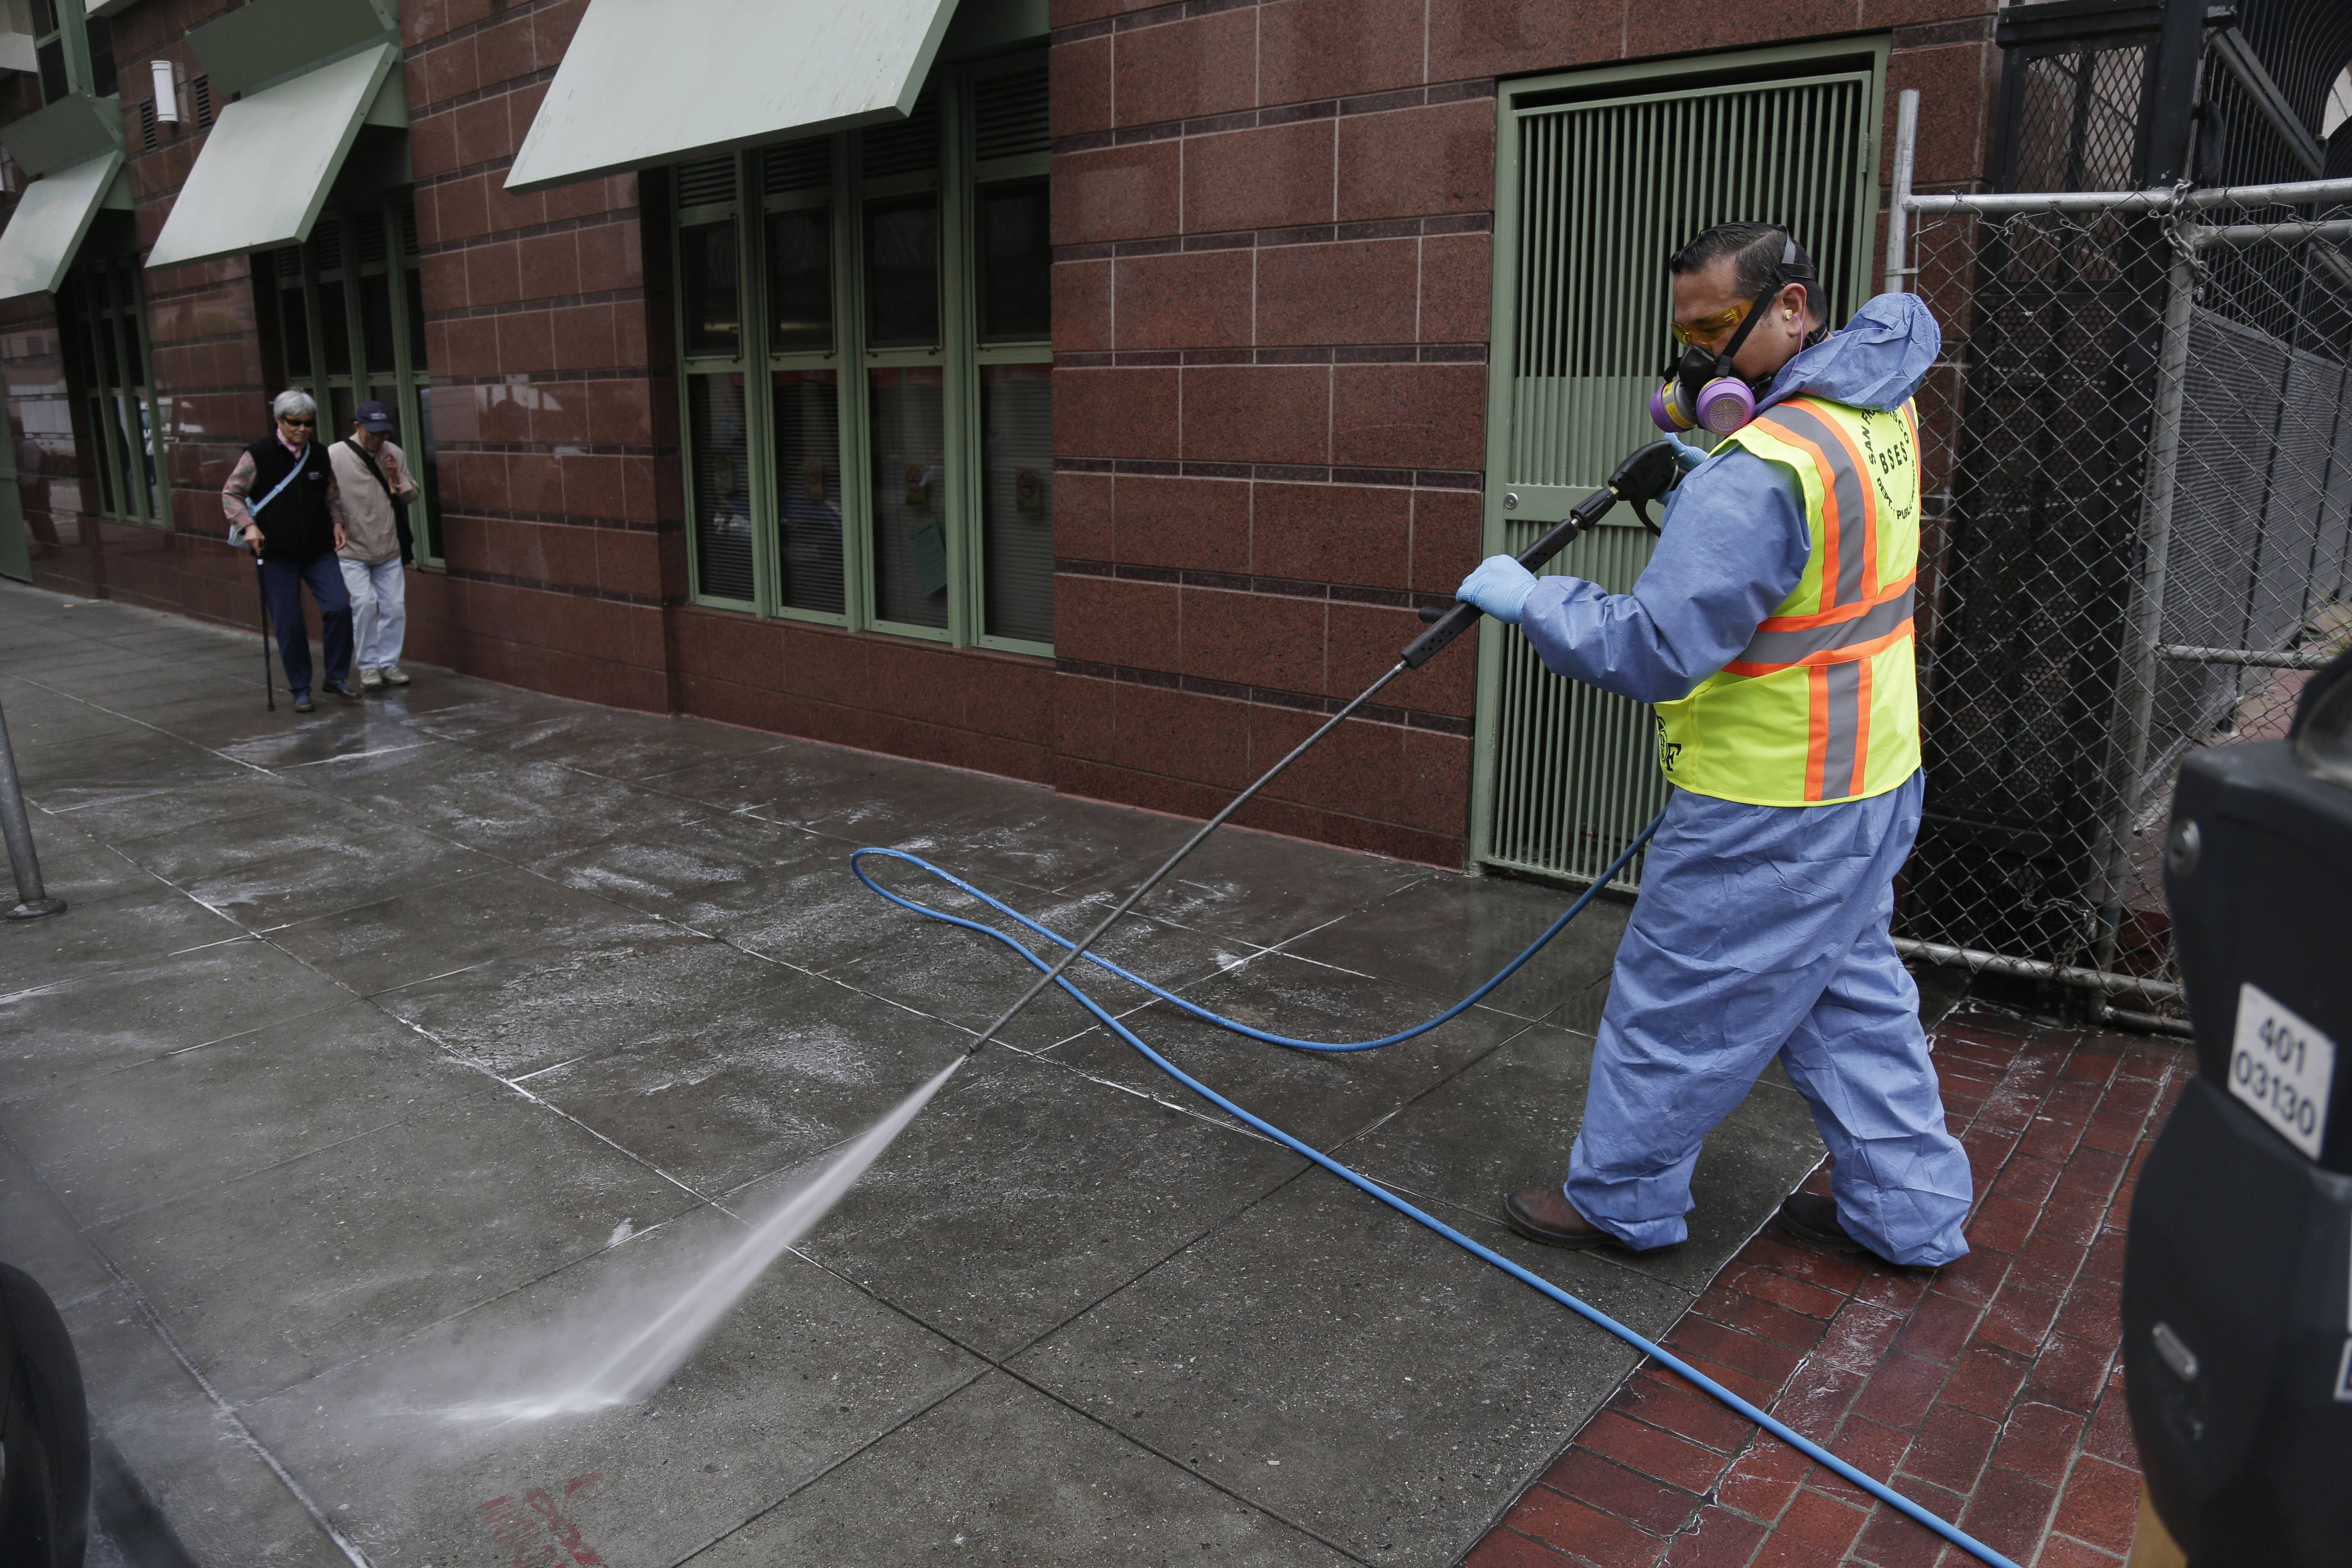 Eighi Hiastake, of the San Francisco Dept. of Public Works, washes a city sidewalk with a mixture of water and disinfectant. In one of the most drastic responses yet to California's drought, state regulators on Tuesday will consider fines of up to $500 a day for people who waste water on landscaping, fountains, washing vehicles and other outdoor uses.